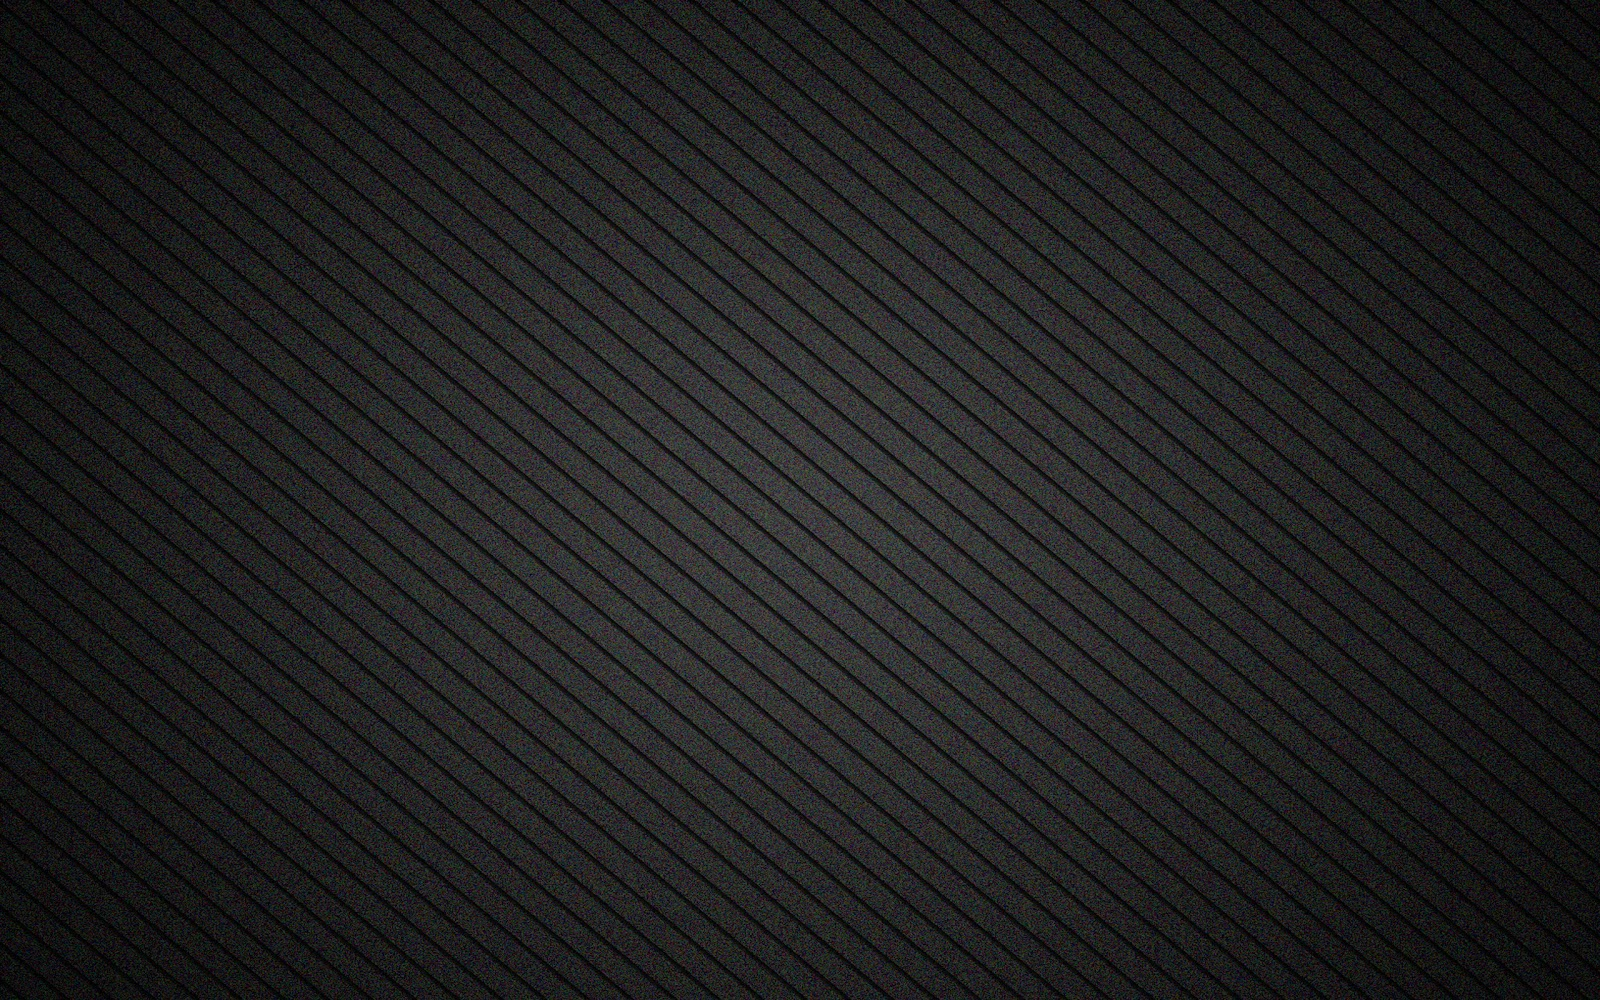 http://1.bp.blogspot.com/--4AtBHBFoFA/UFO0g4FakmI/AAAAAAAAX58/8YfbcrX6DO4/s1600/Black-Lines-Hq-Background-2560x1600.jpg